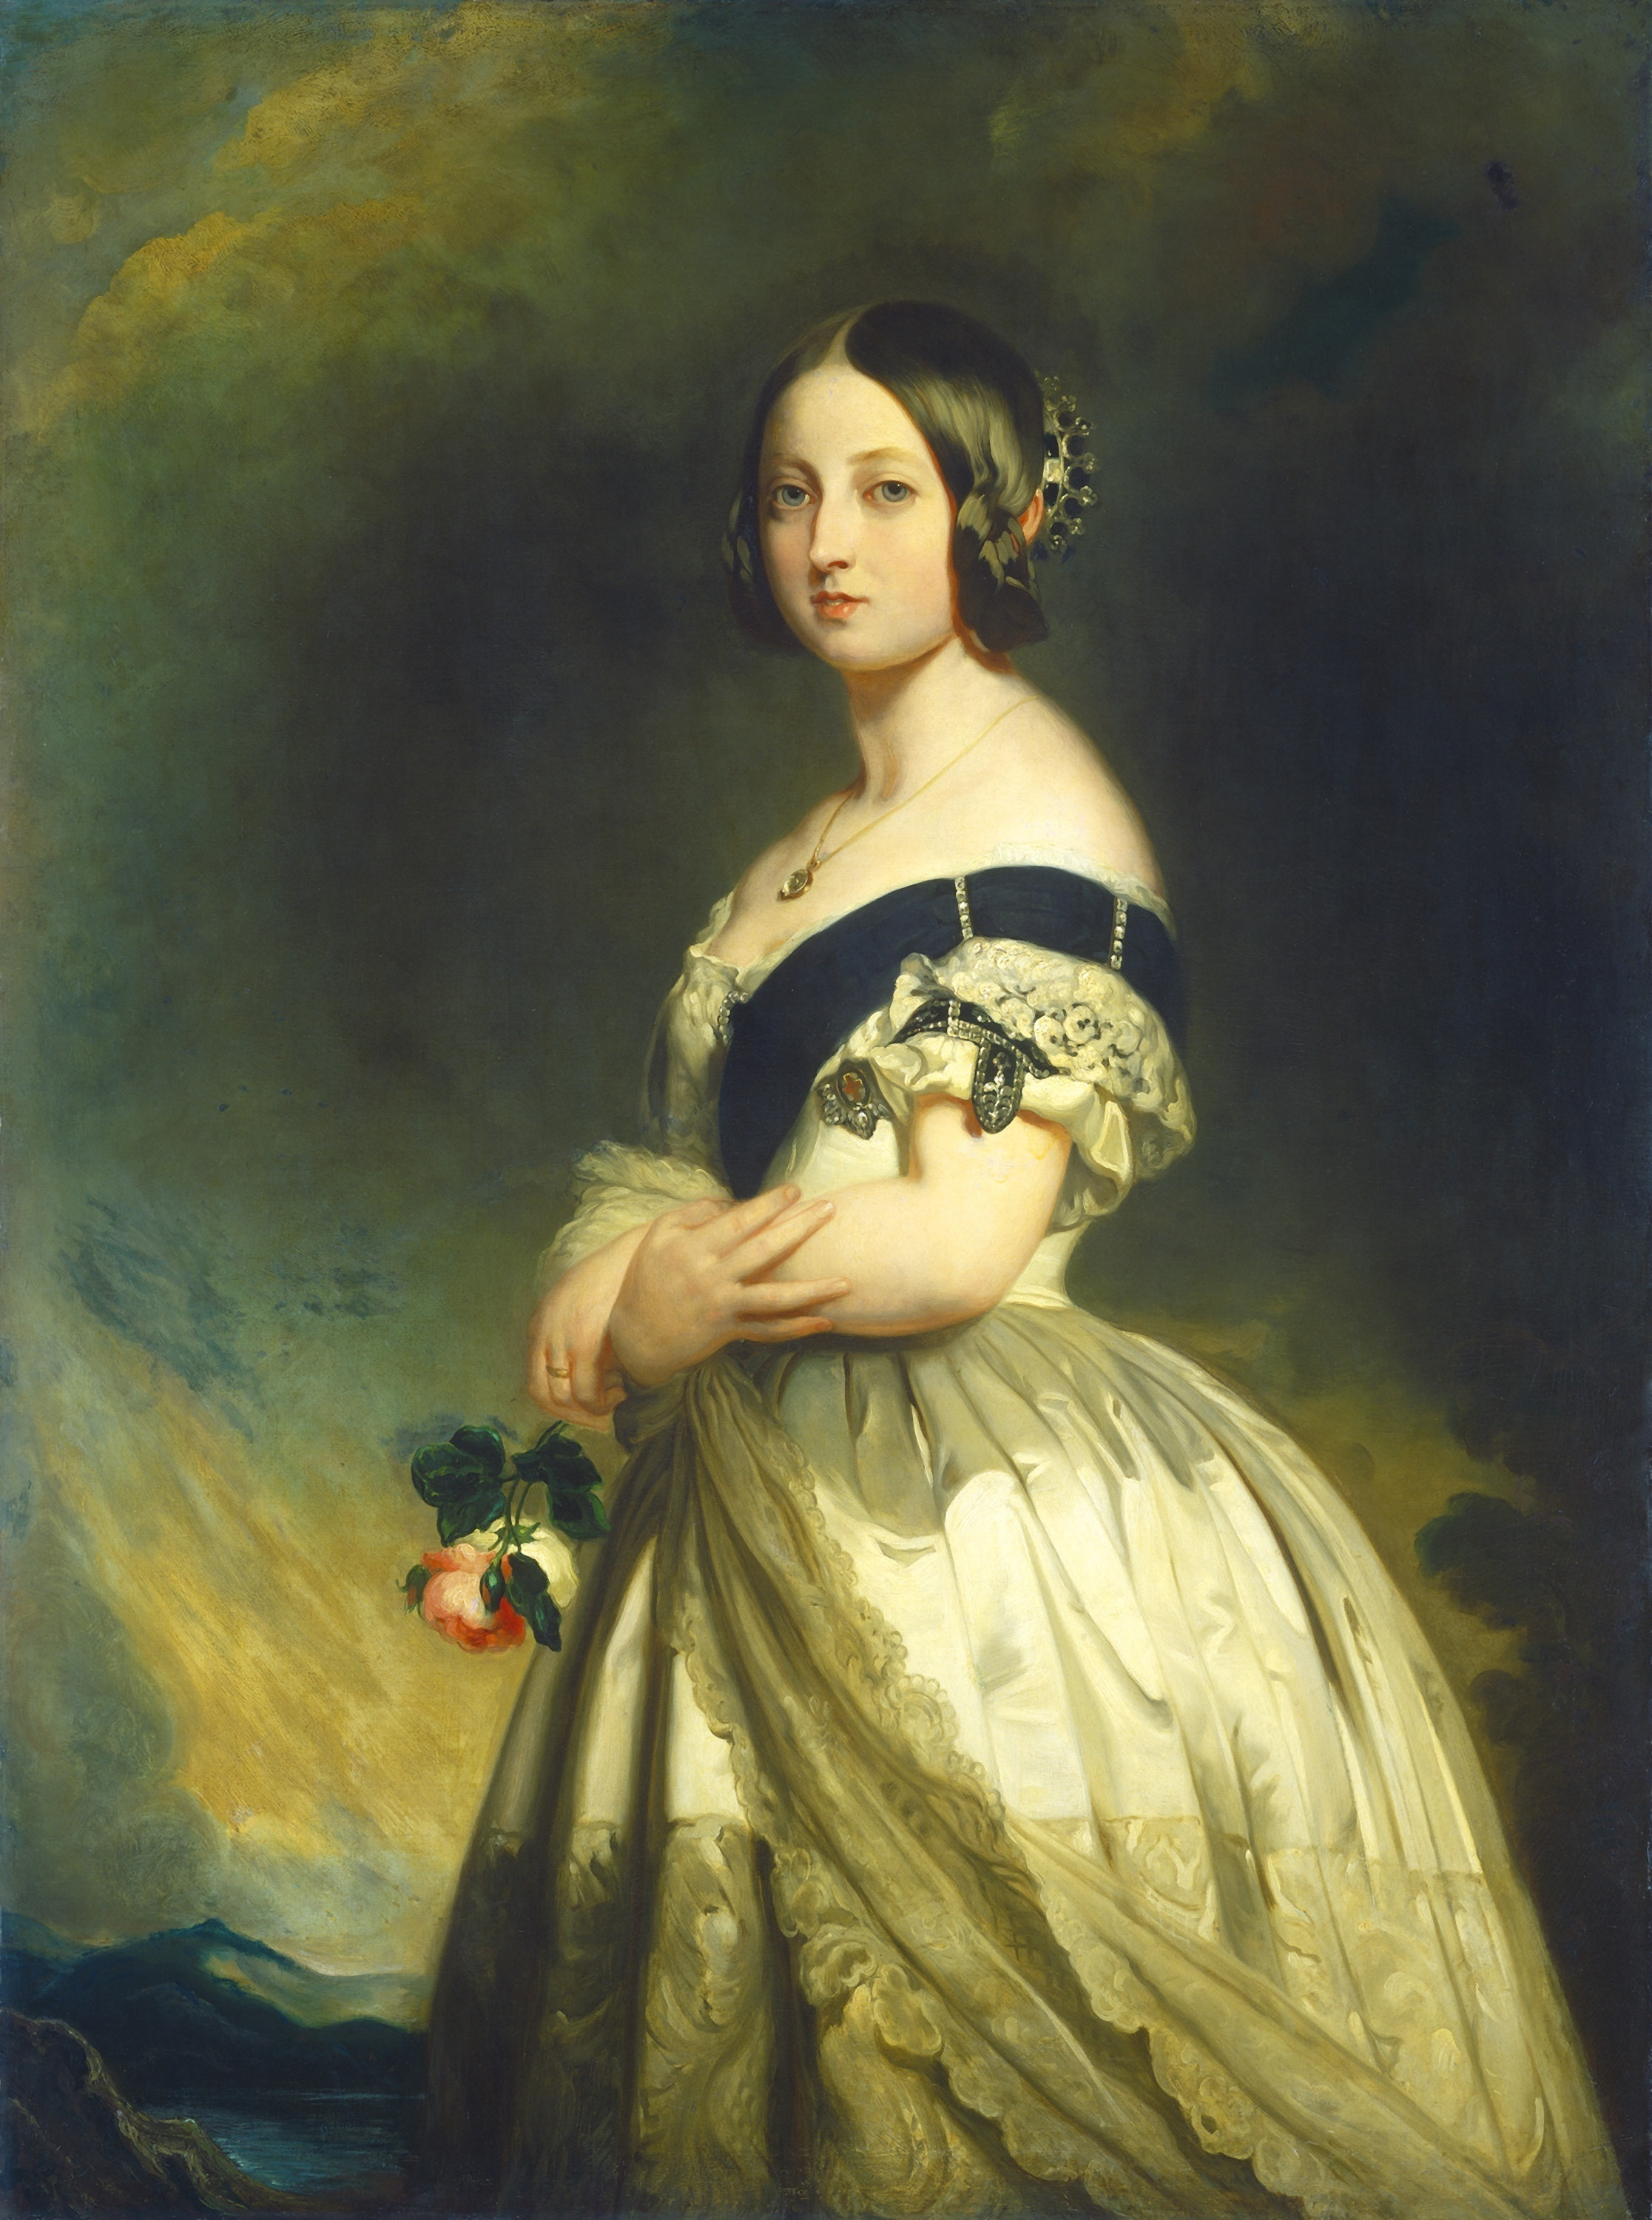 Queen Victoria, Biography and Accomplishments